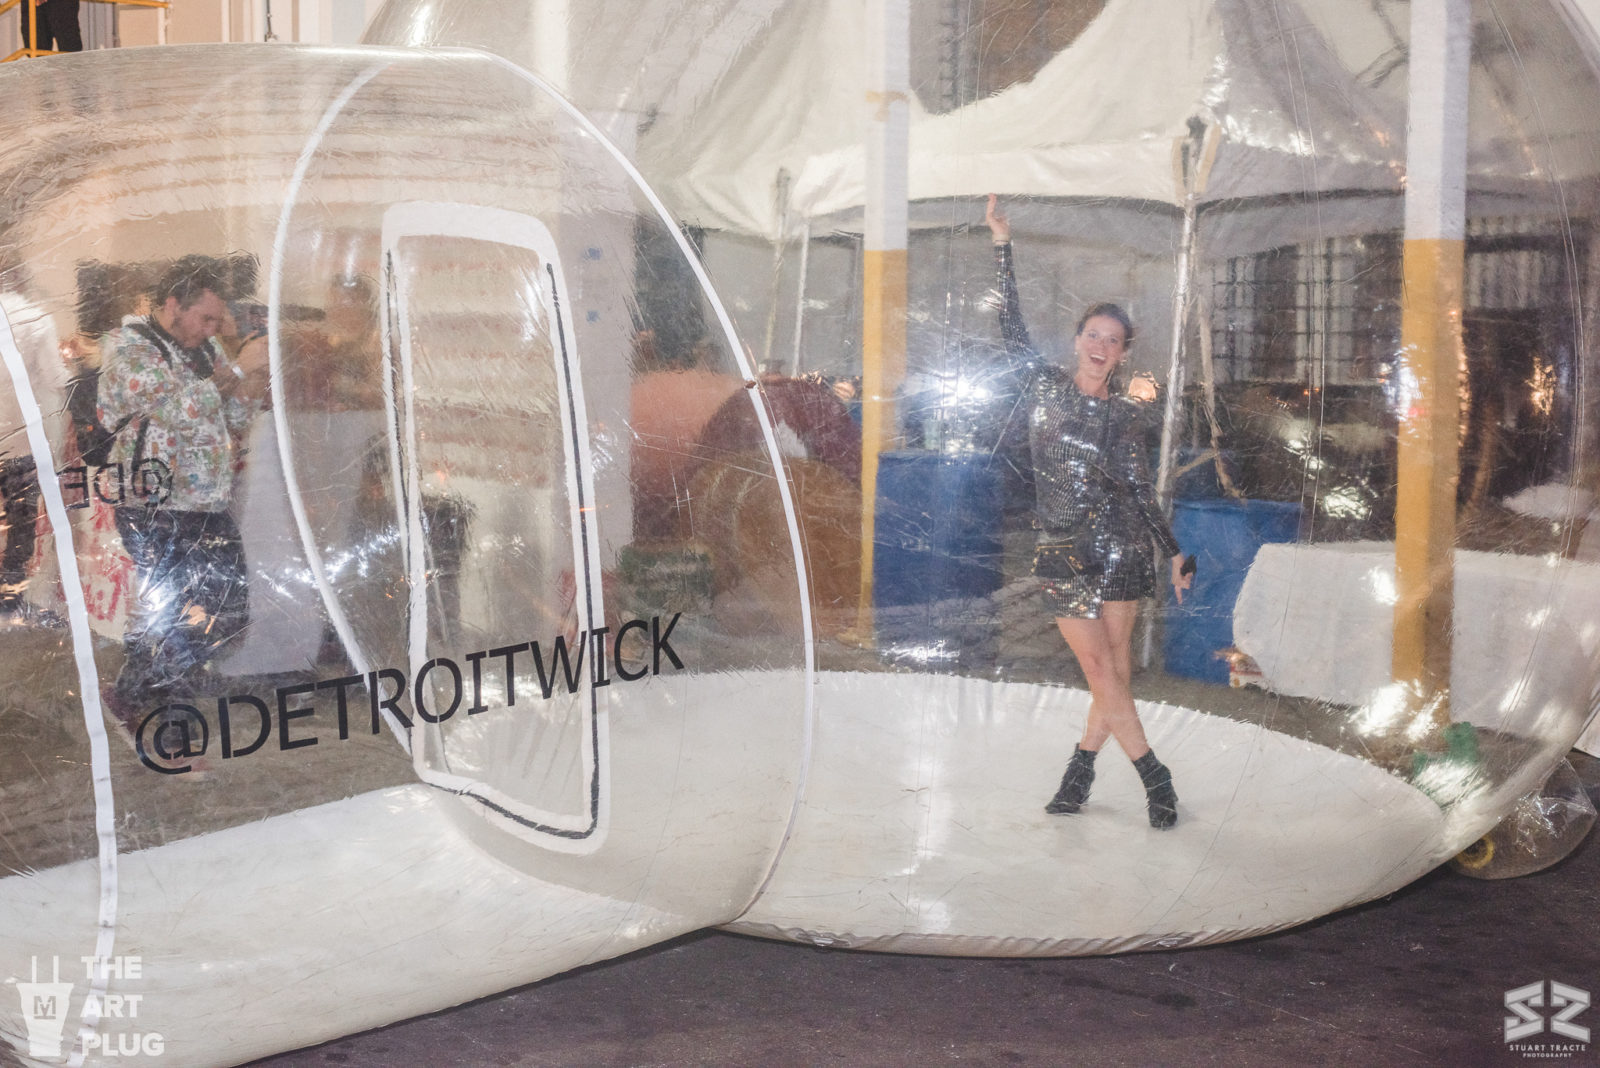 DetroitWick – Scent Bubble at The Art Plug Power House